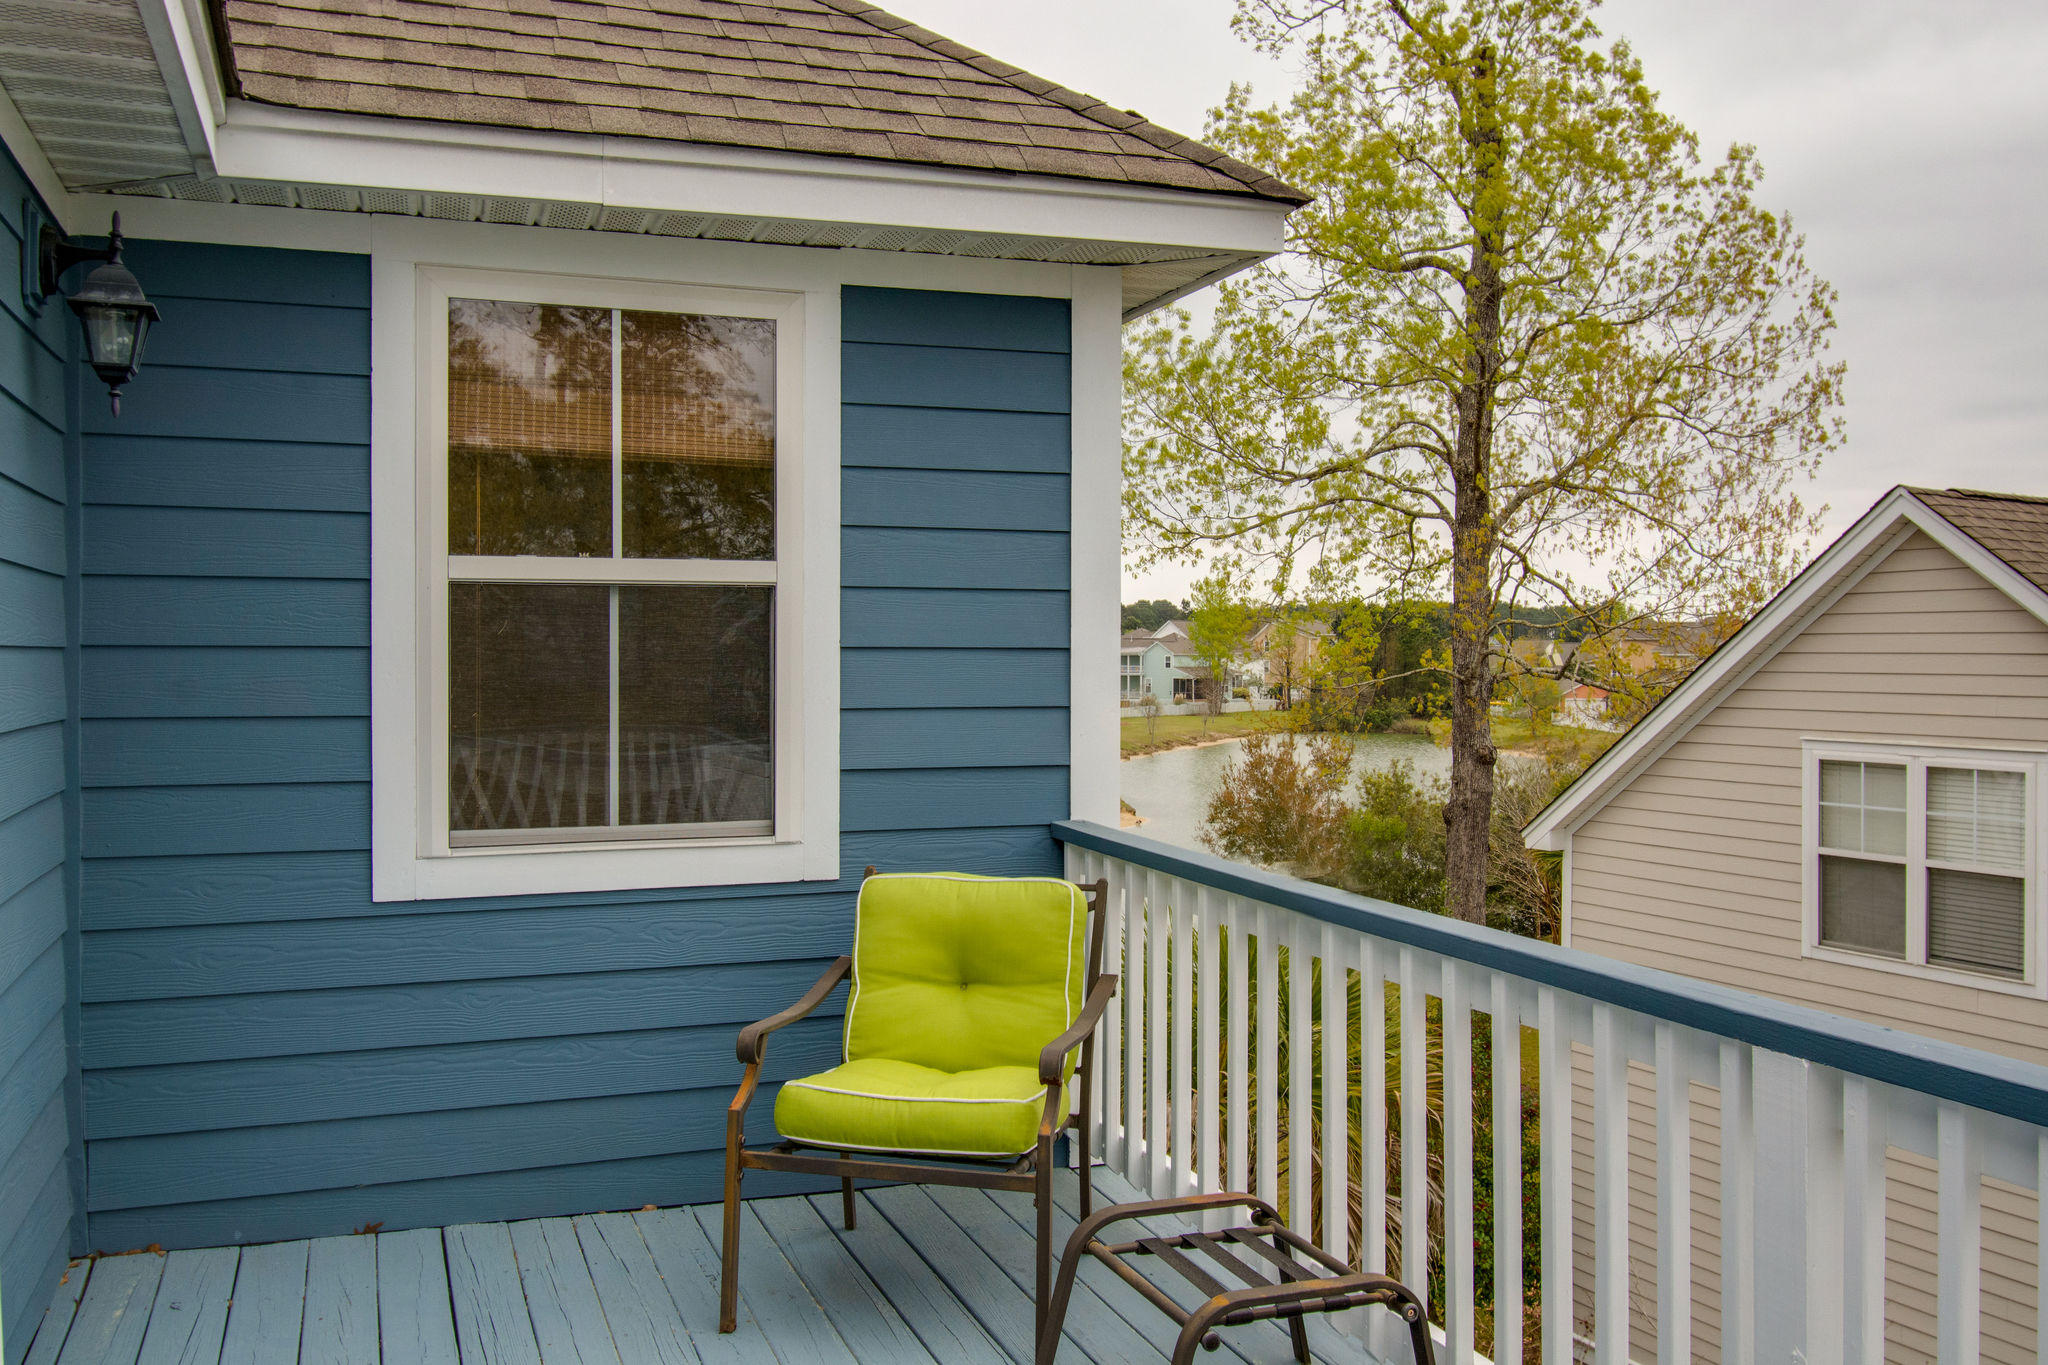 Rivertowne On The Wando Homes For Sale - 2226 Marsh, Mount Pleasant, SC - 6